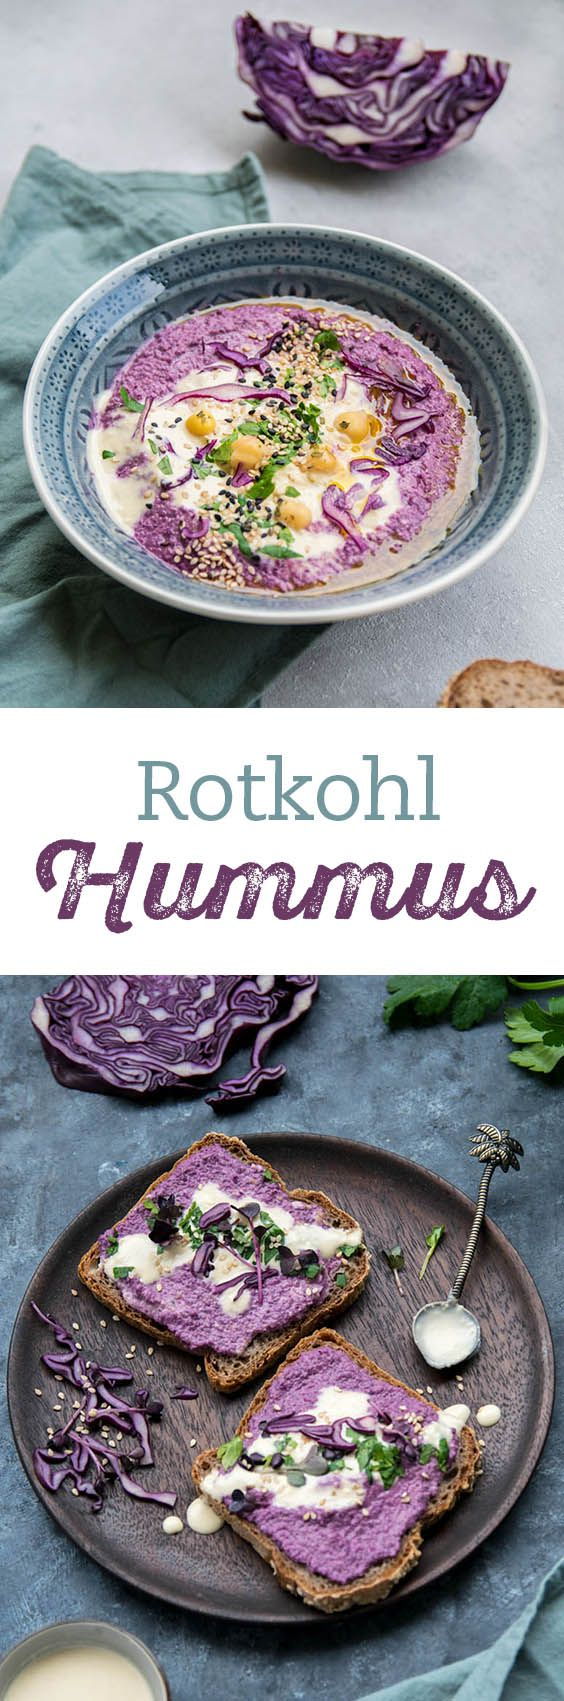 rotkohl hummus rezept vegan paleo and gluten free pinterest hummus kohl und vegan. Black Bedroom Furniture Sets. Home Design Ideas